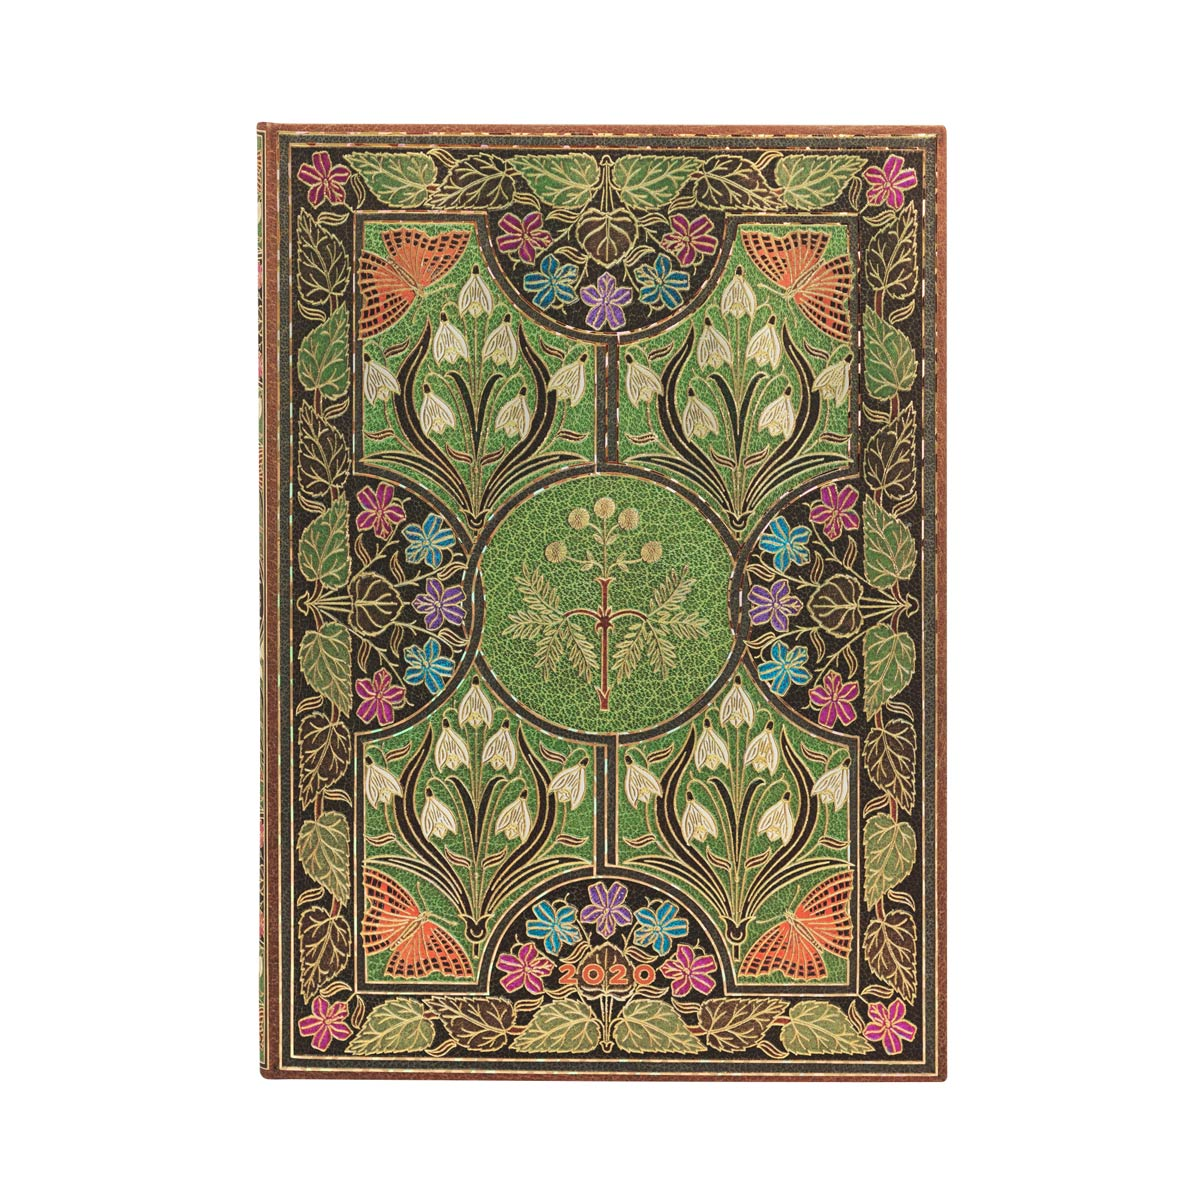 Paperblanks Grande Poetry in Bloom 2020 Week-At-A-Time Planner